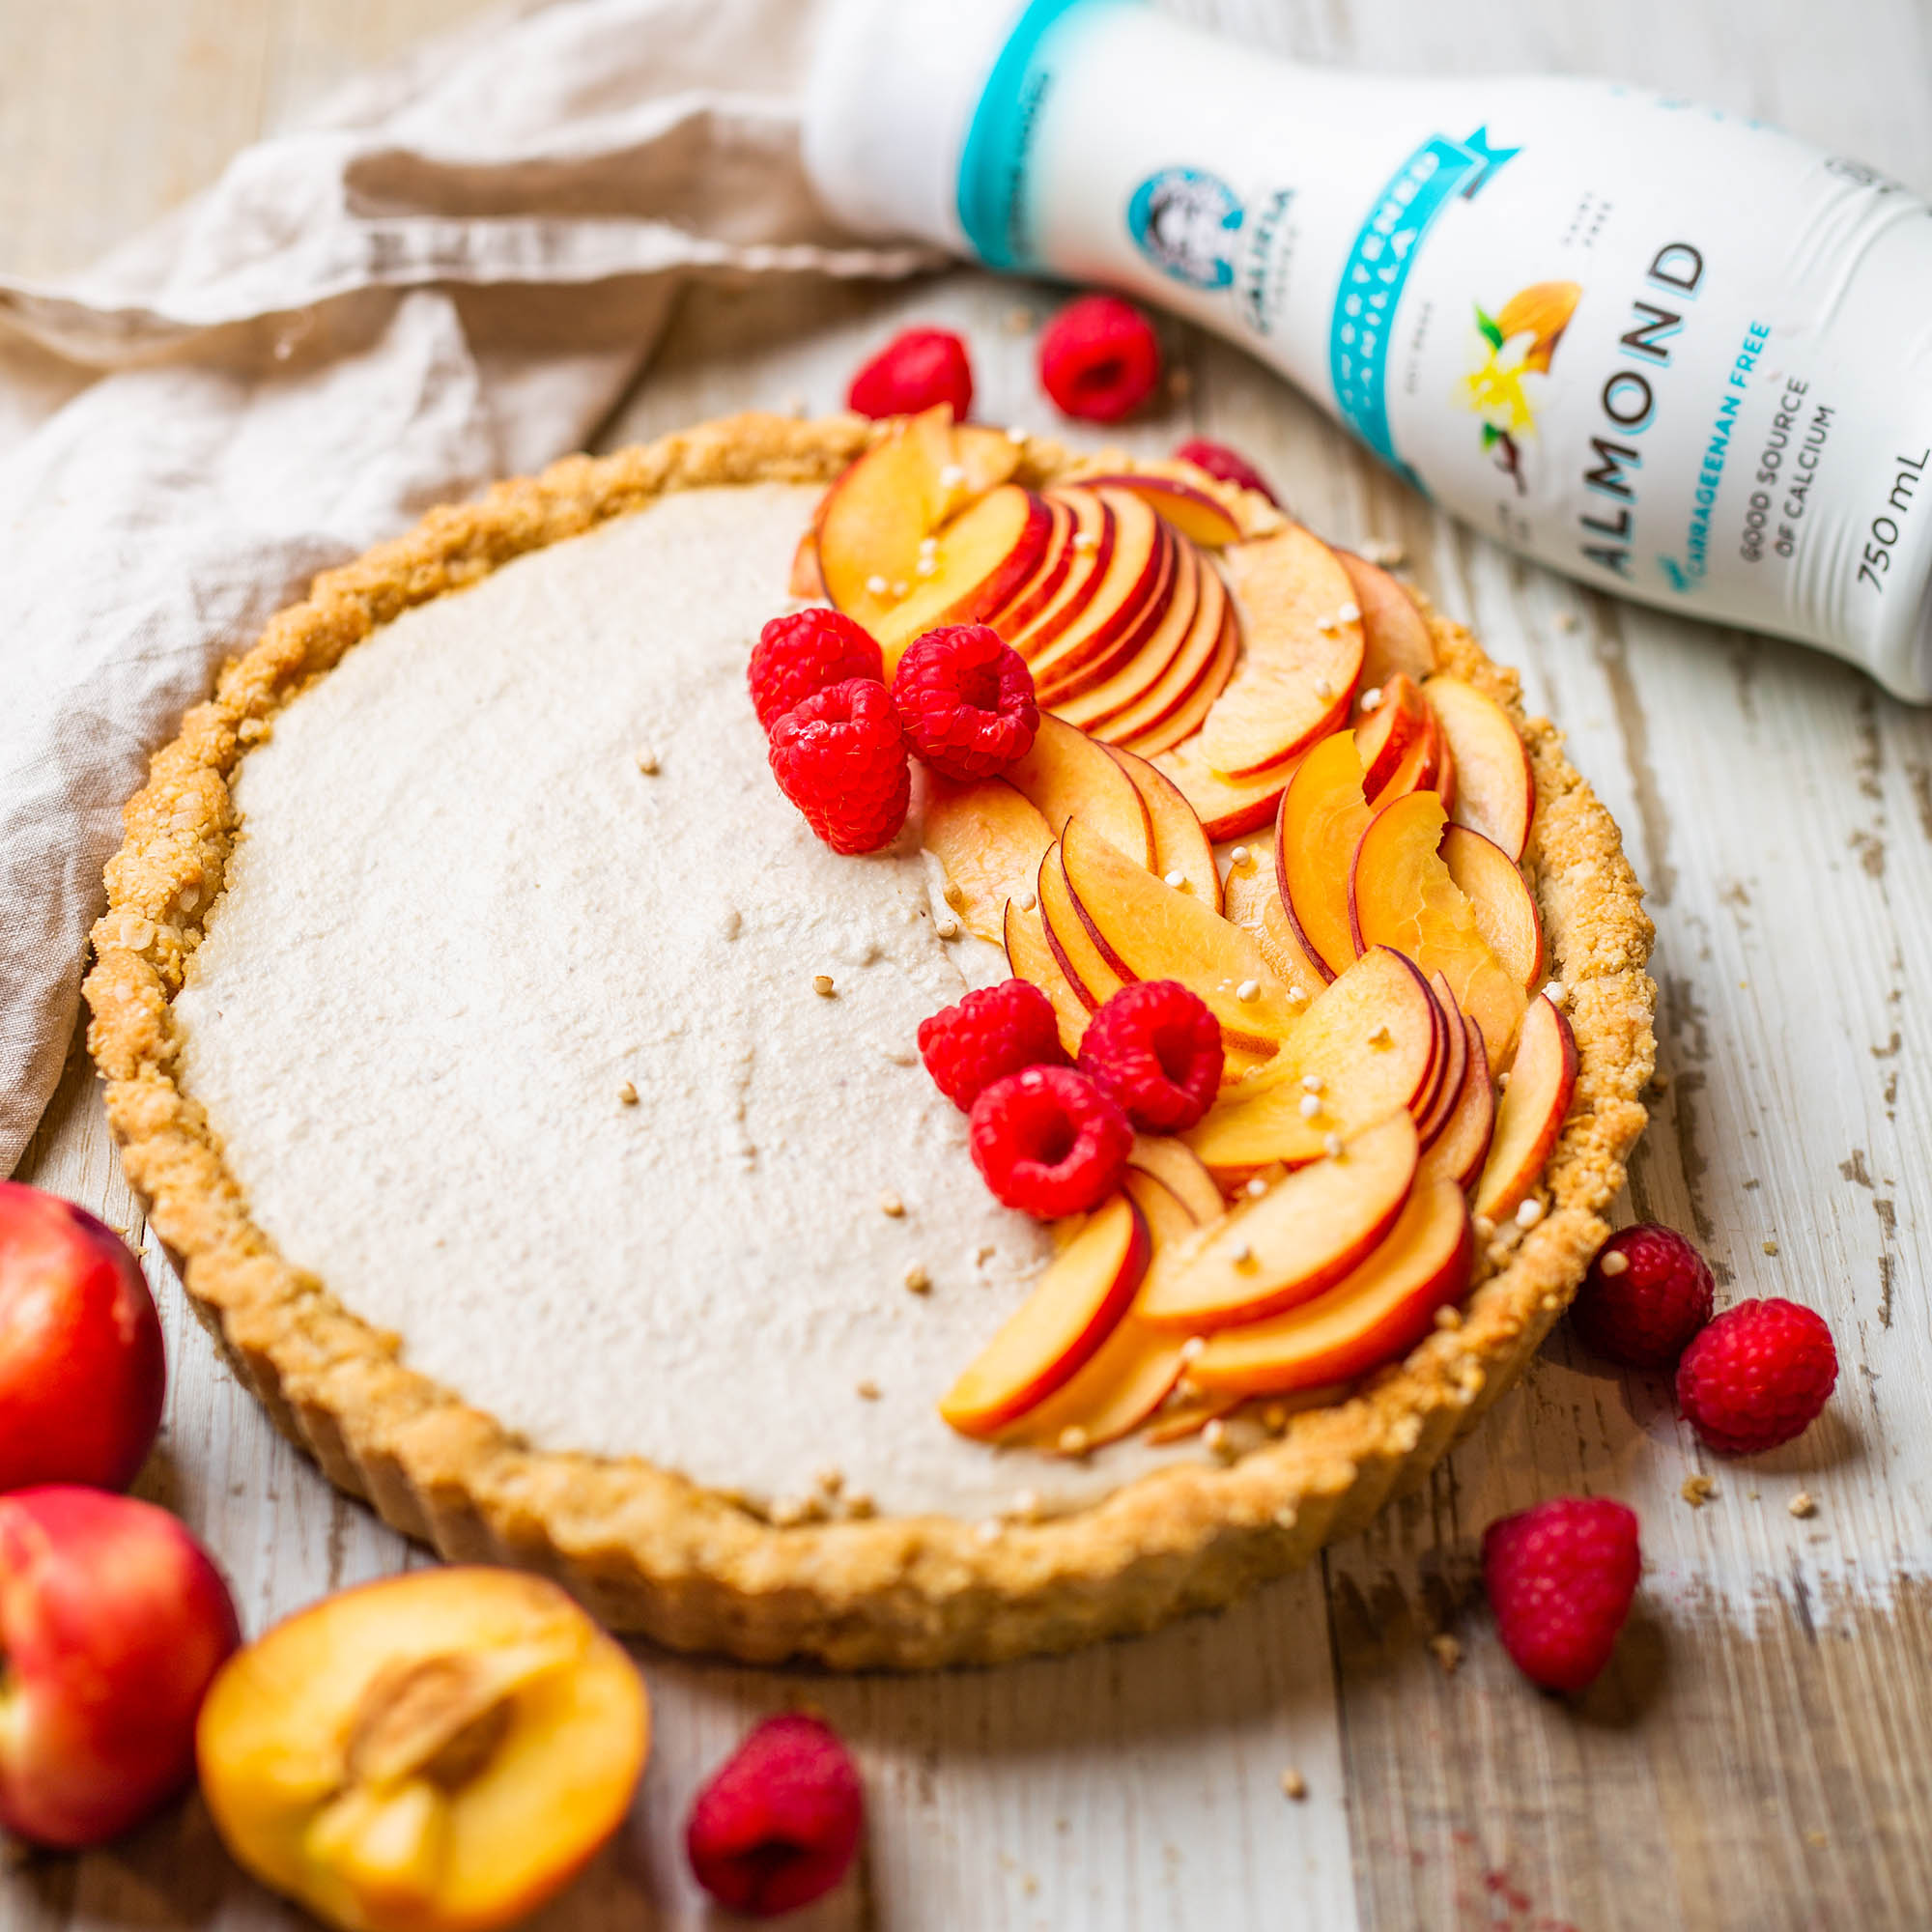 Vegan White Chocolate Nectarine Tart with Califia Unsweetened Vanilla Almond Milk